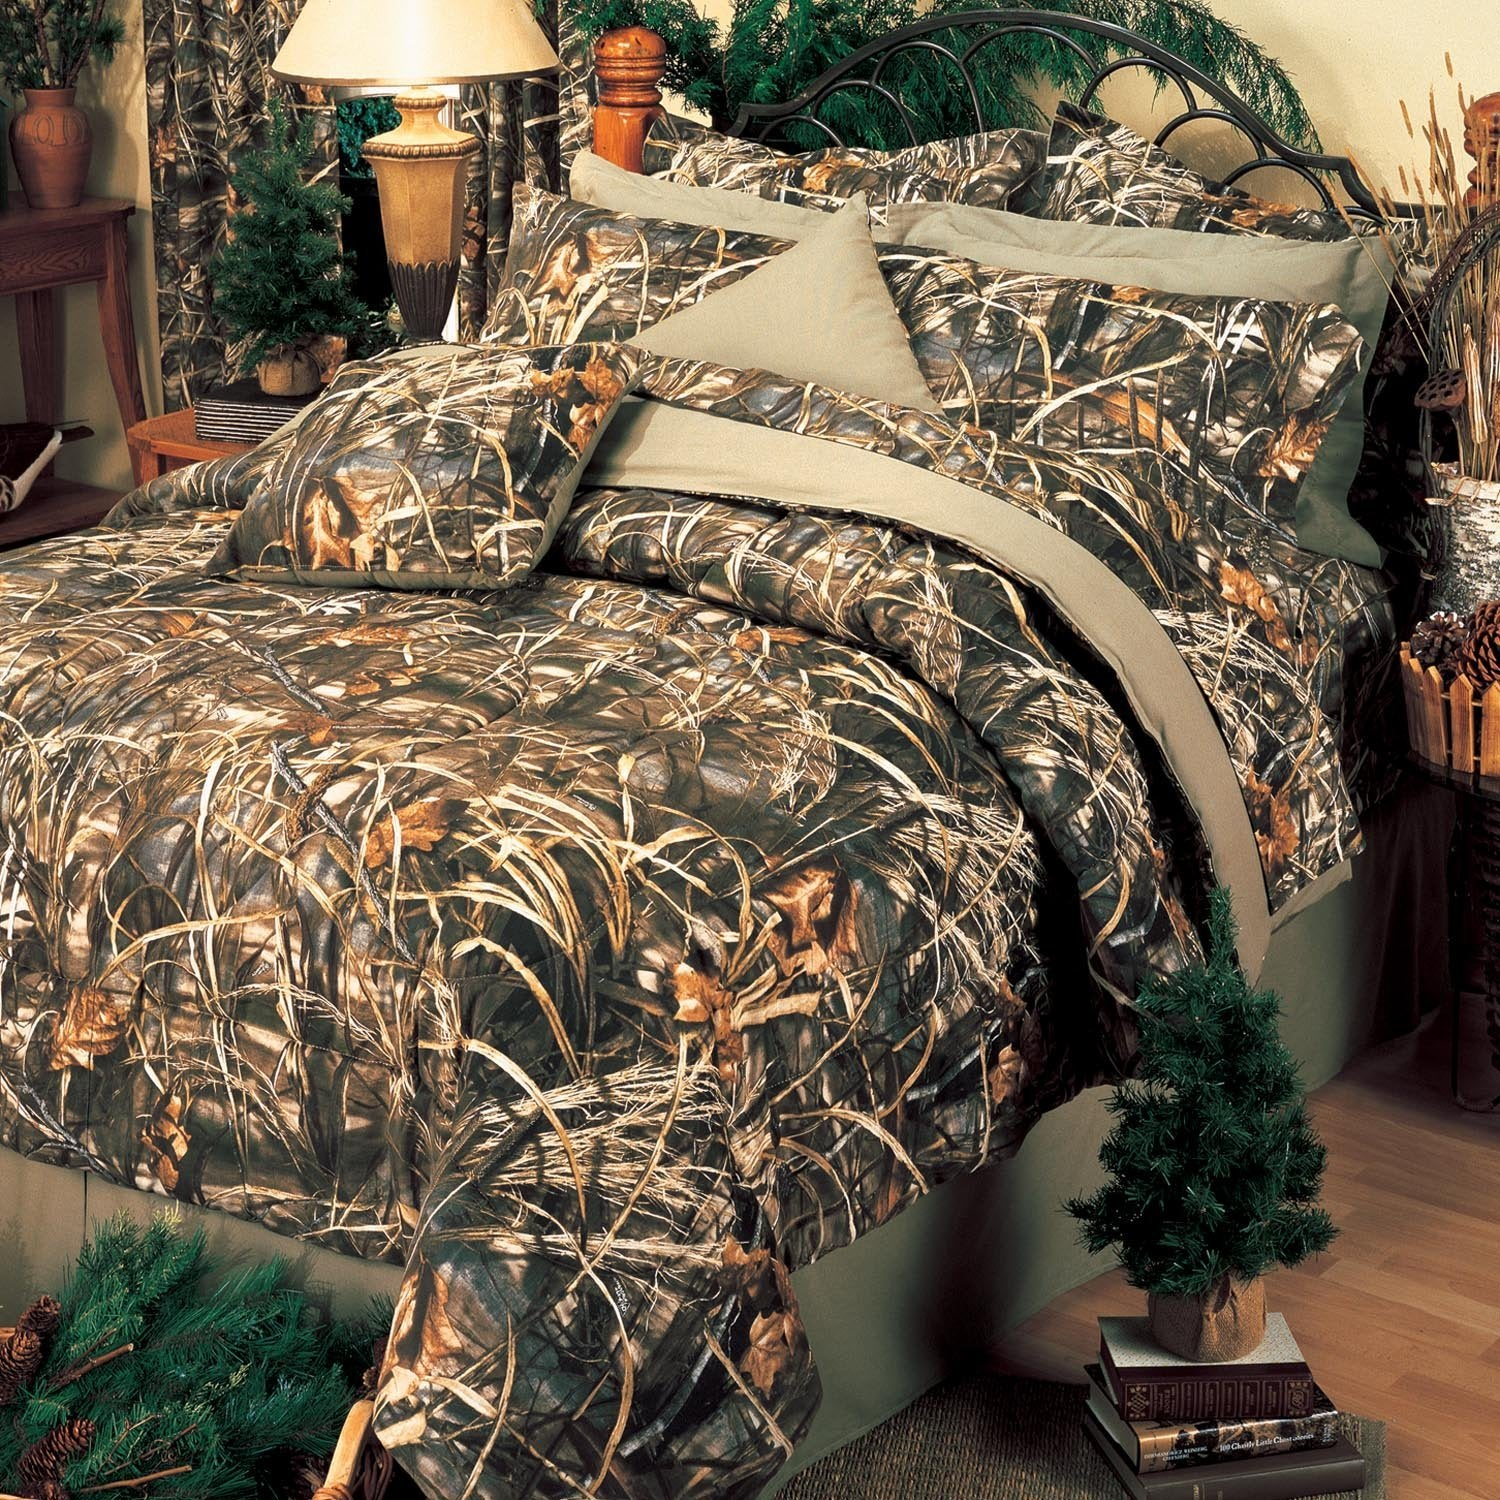 Search Results For Patterned Comforter Sets Rural King - Bedding comforter set realtree xtra